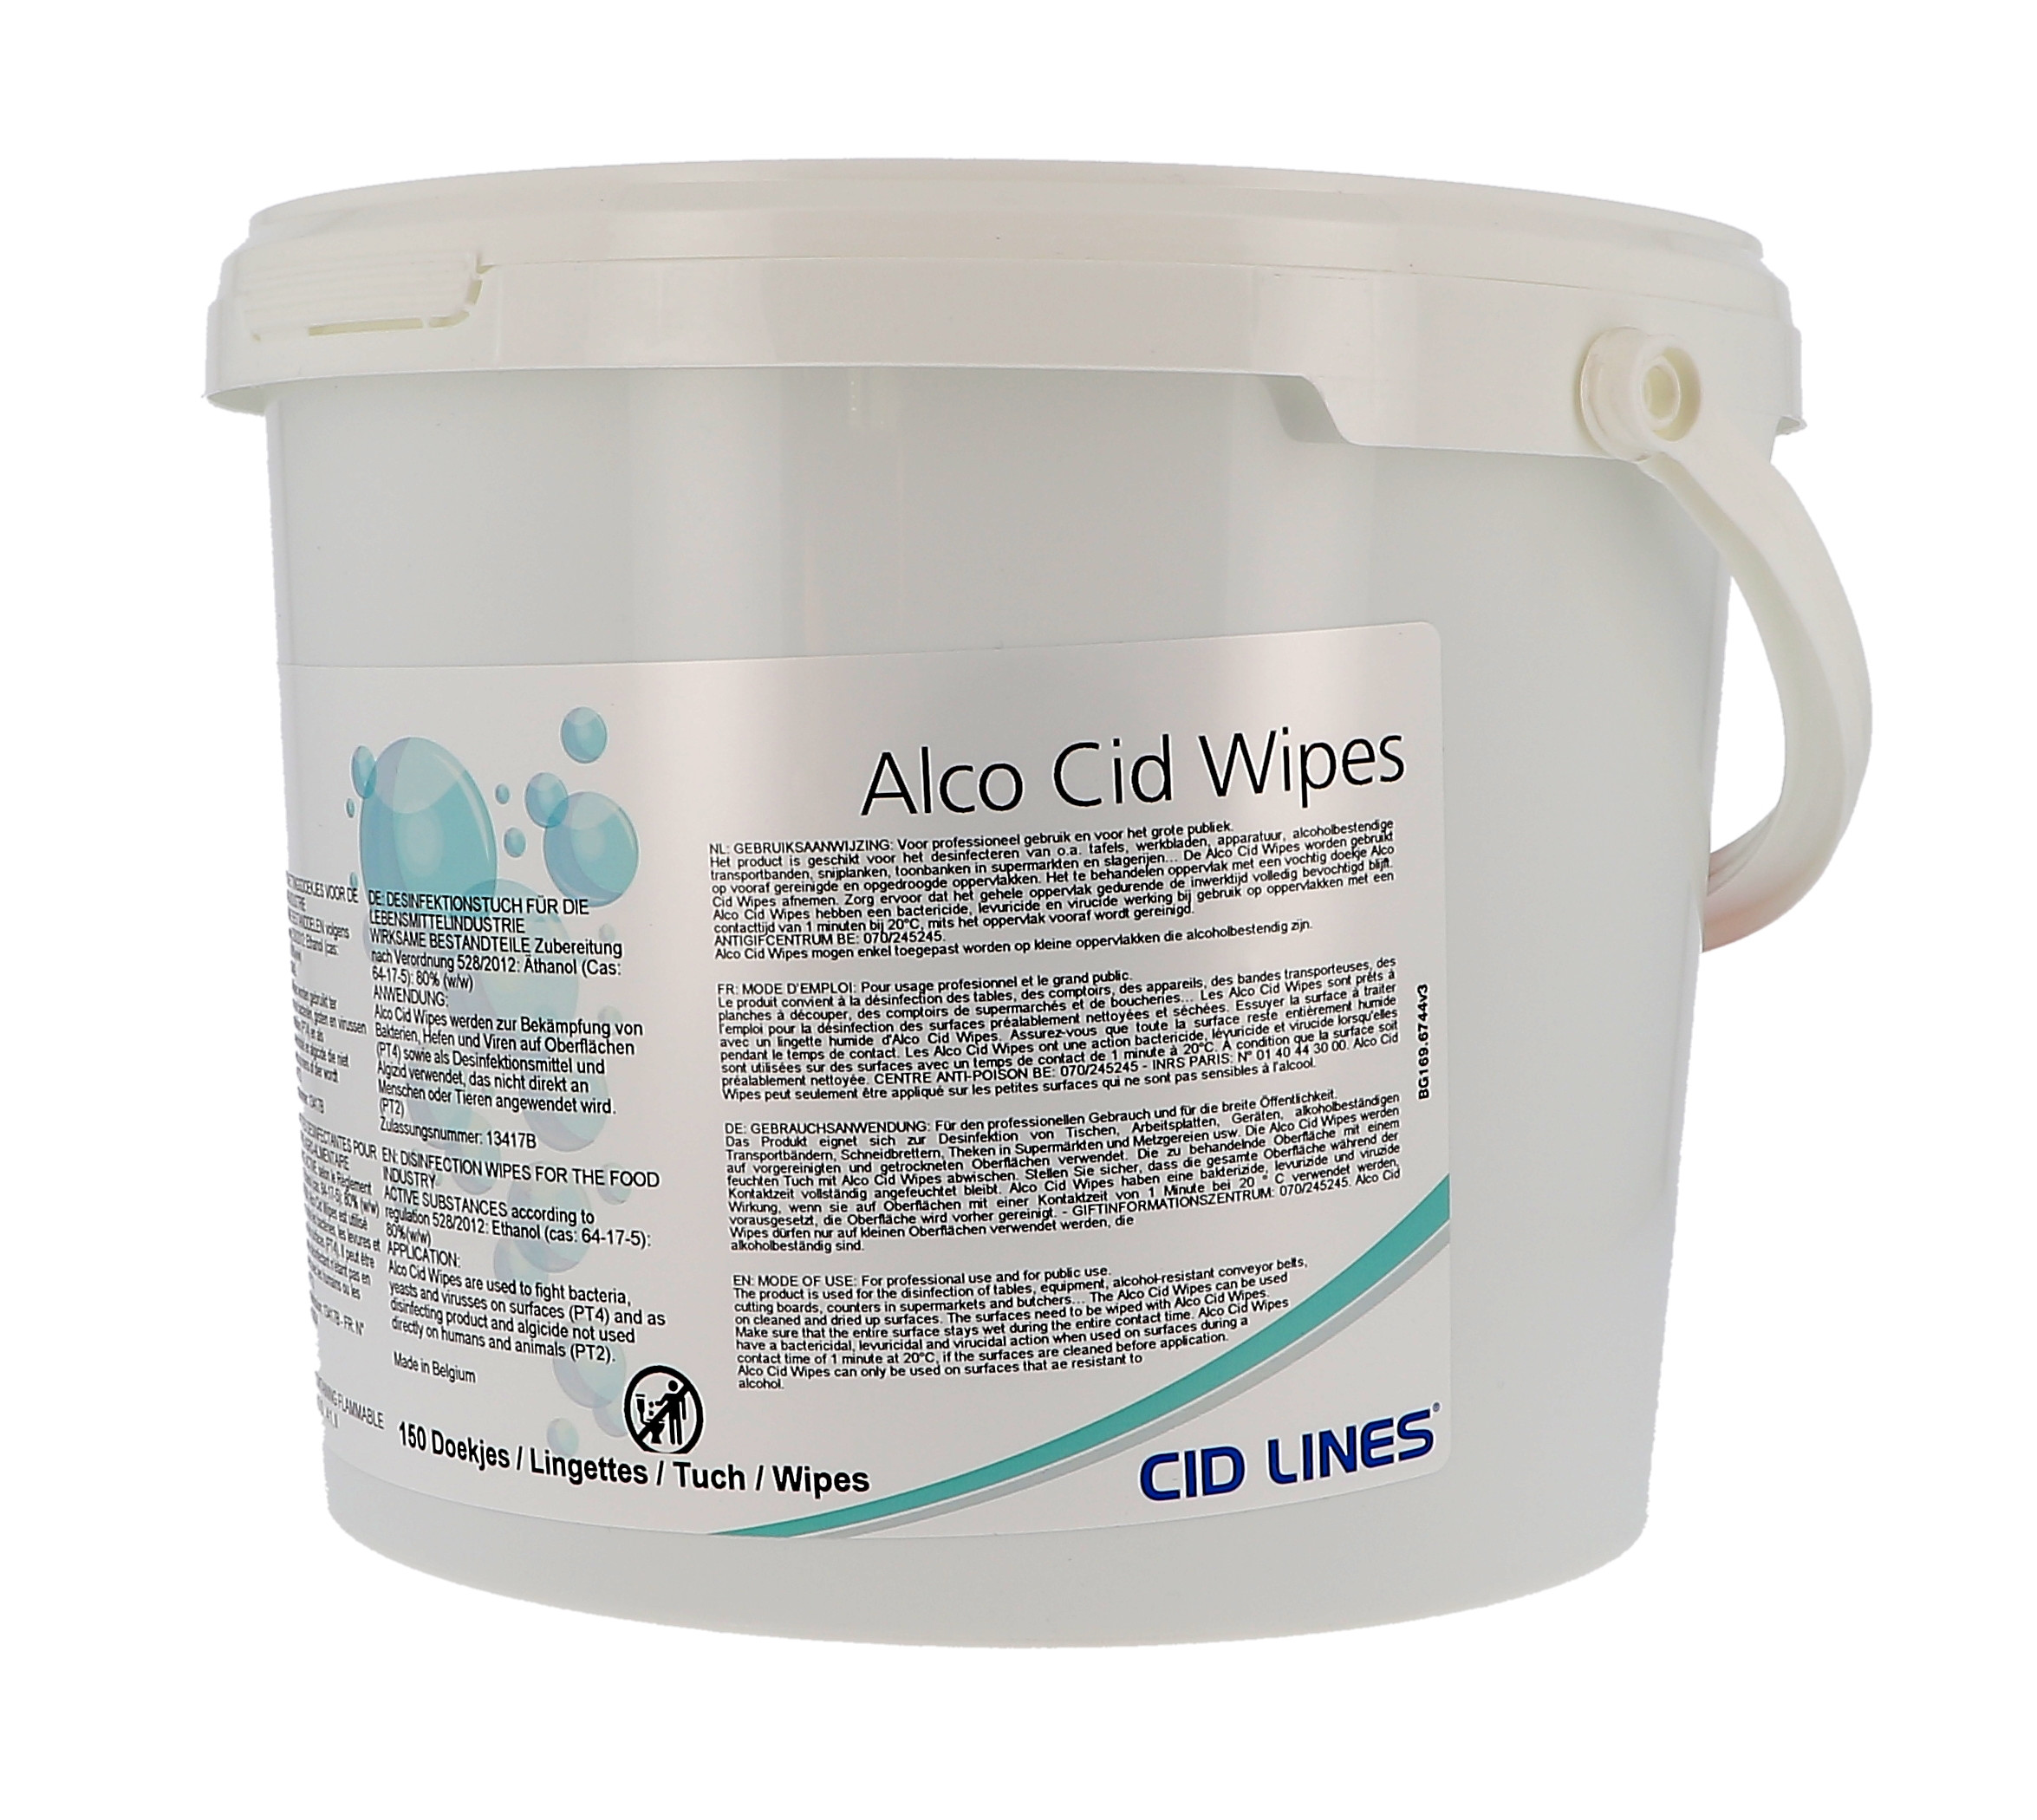 Alco Cid Wipes 150pcs Disinfecting Wipes for Surfaces